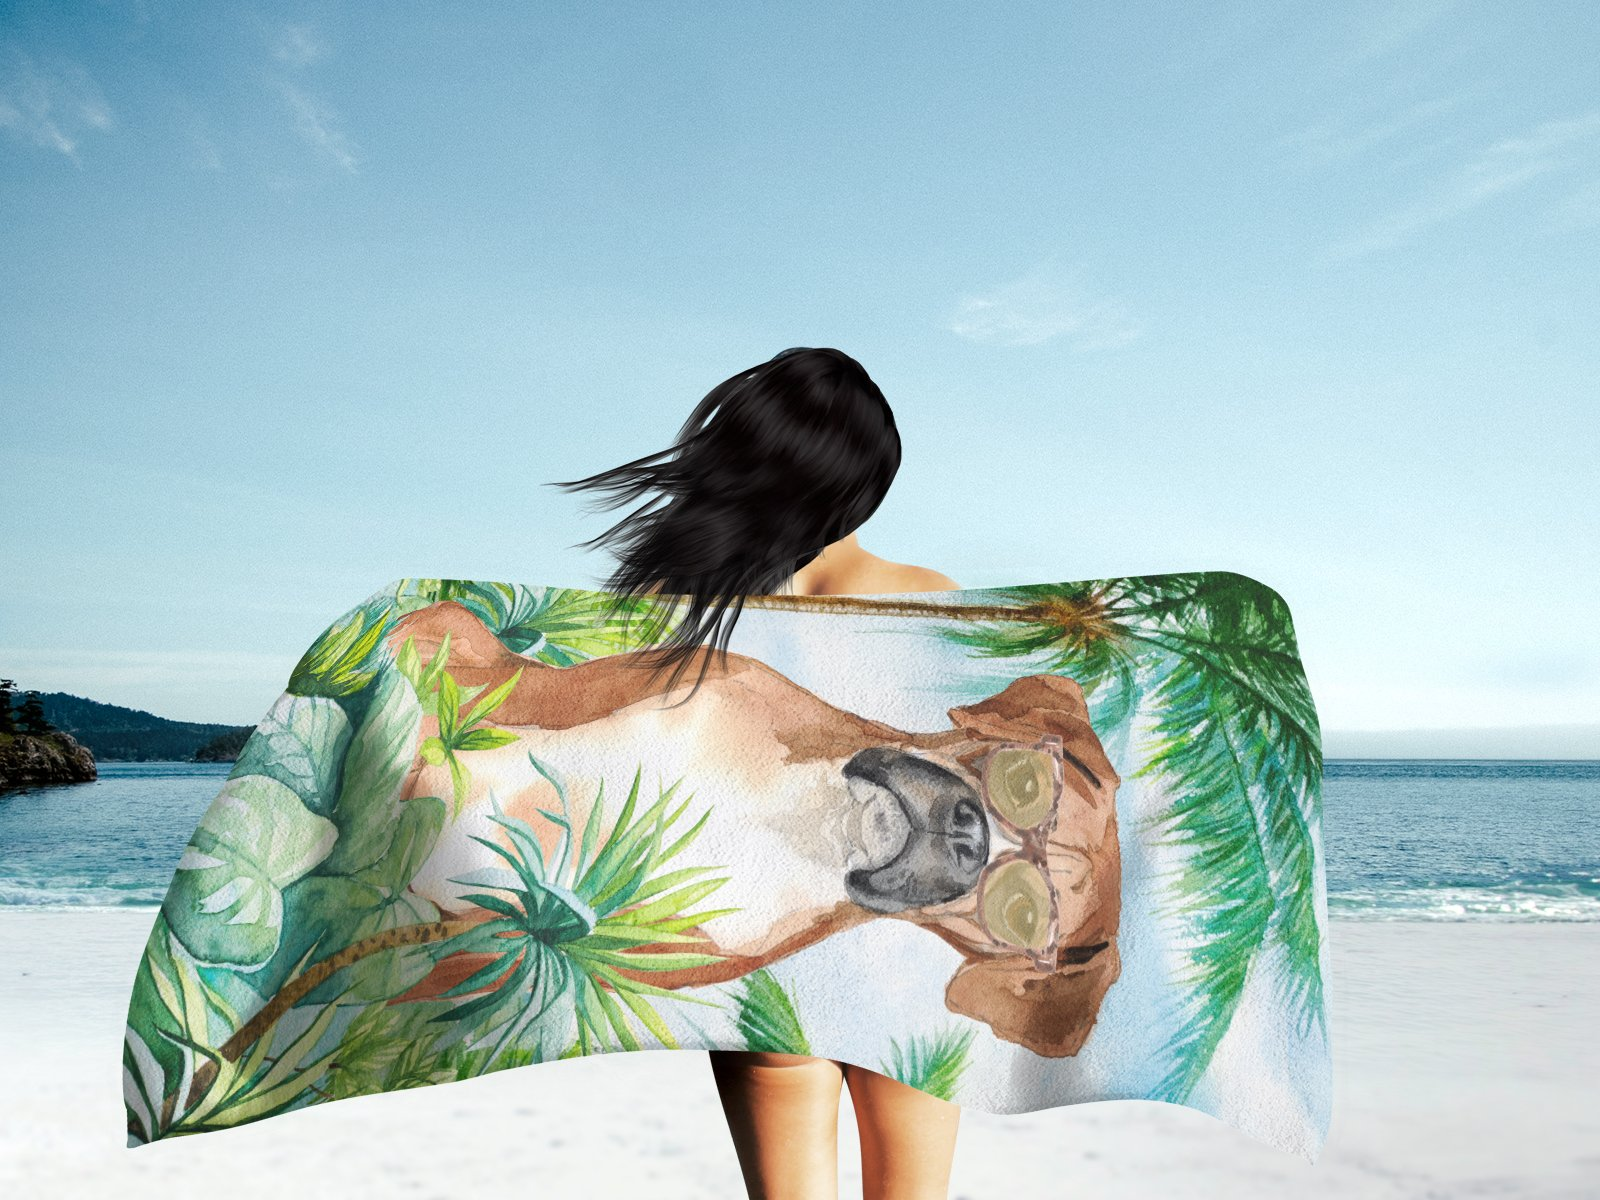 Boxer Premium Beach Towel CK3020TWL3060 by Caroline's Treasures